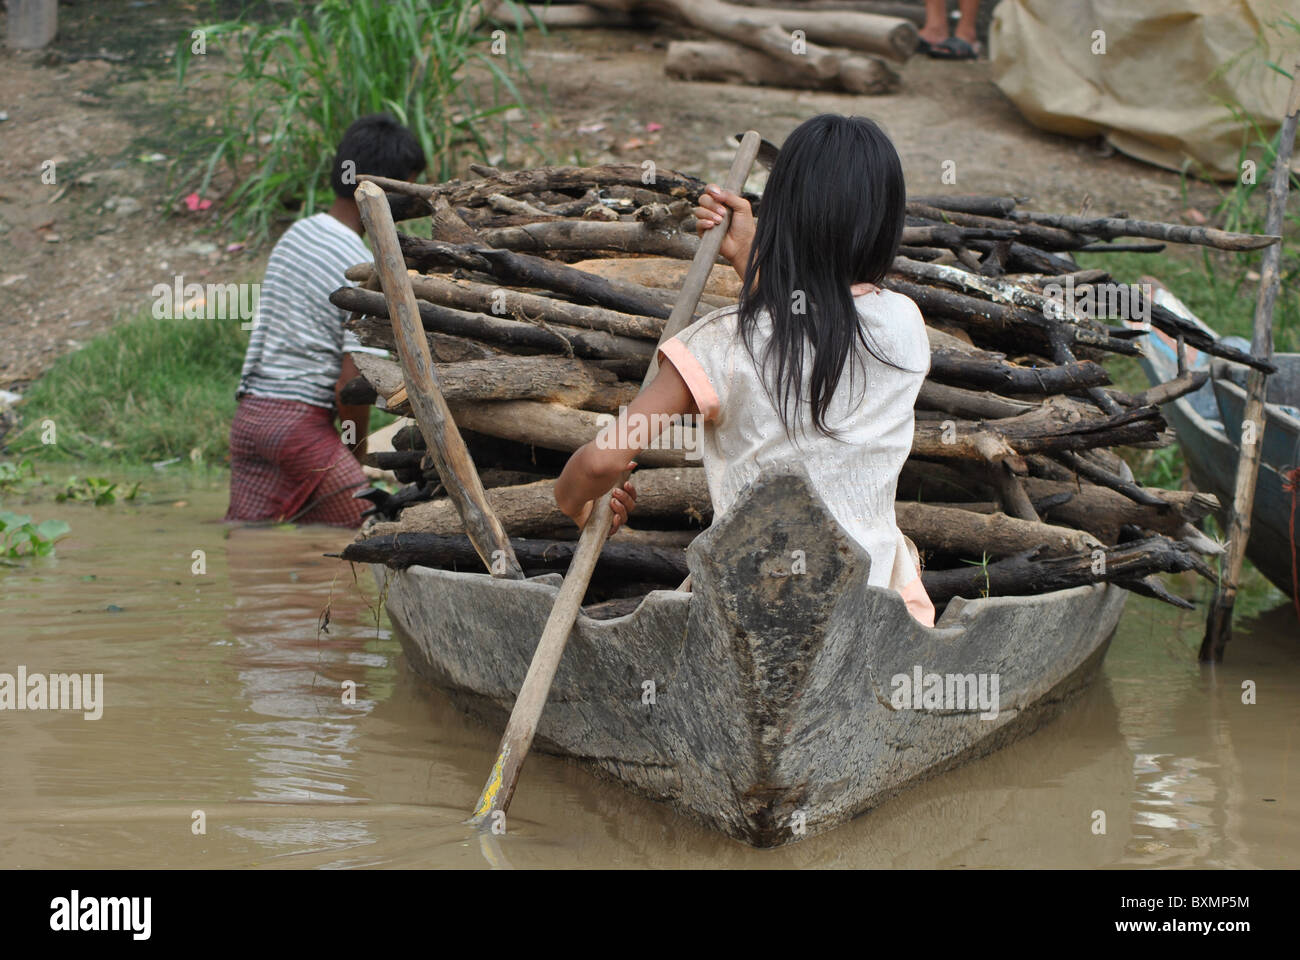 Children collecting firewood on Tonle Sap lake, Cambodia - Stock Image